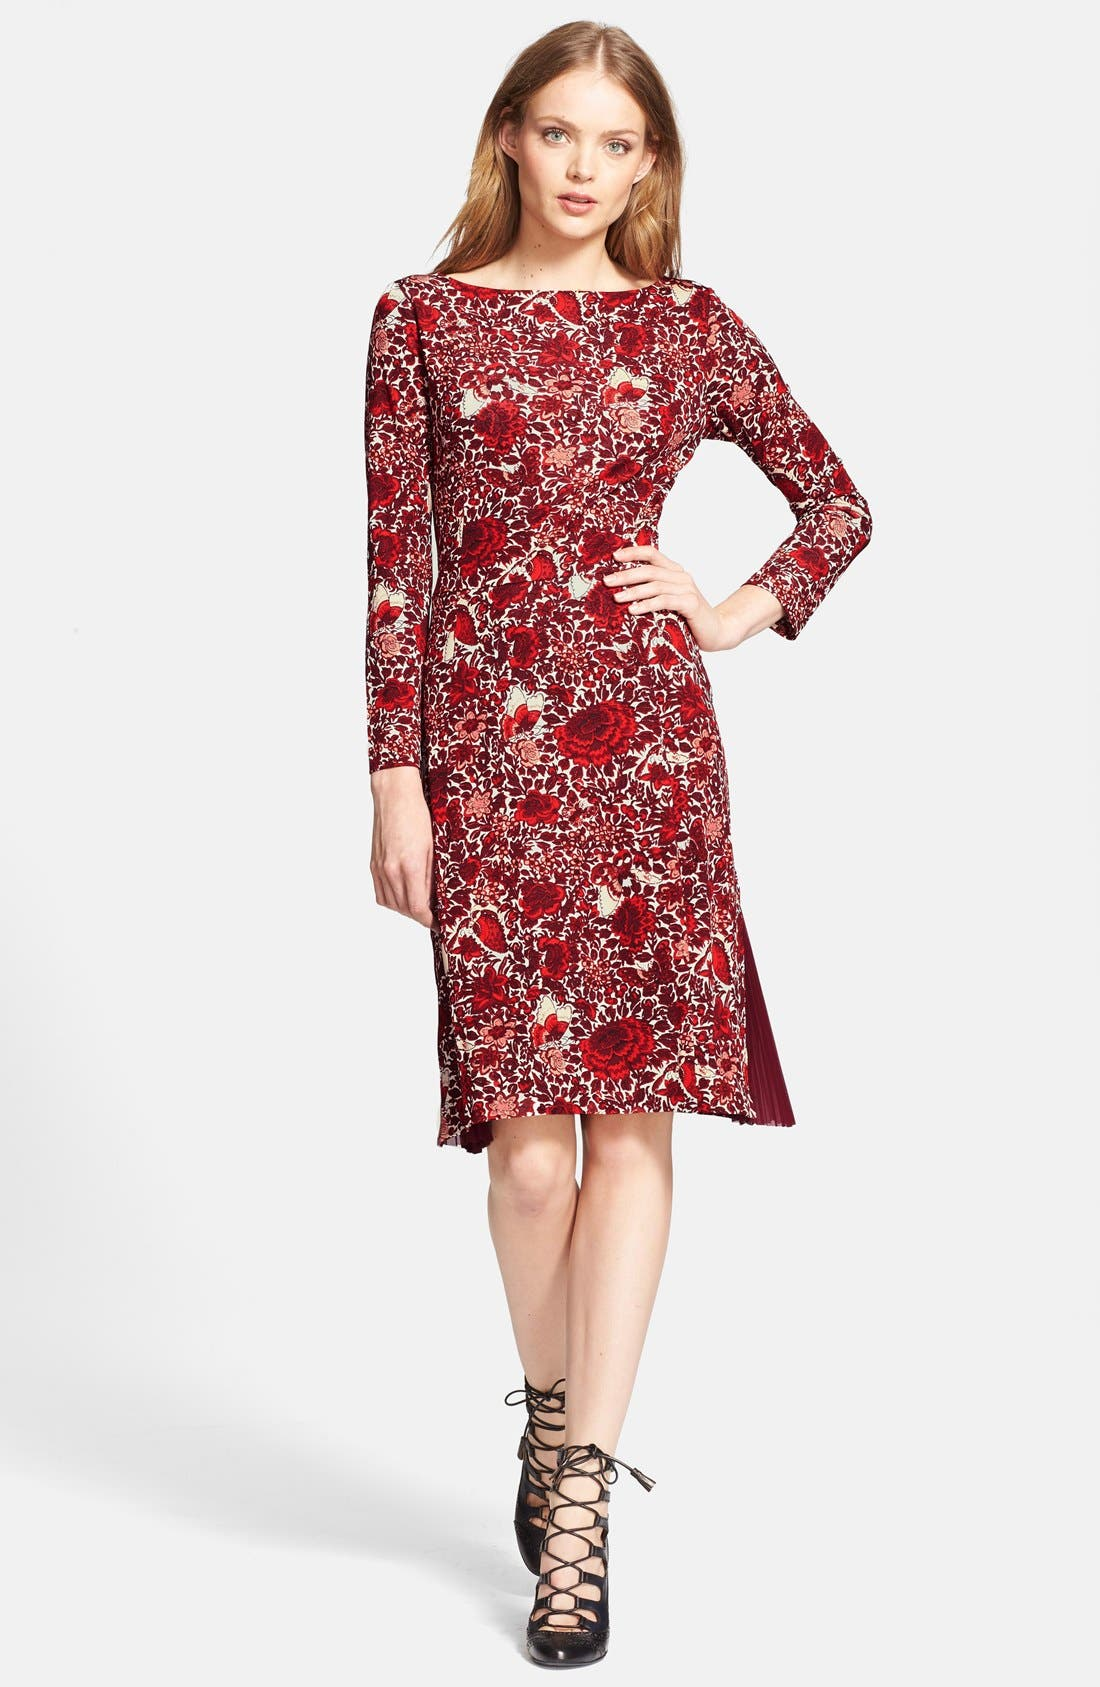 Alternate Image 1 Selected - Tory Burch 'Ria' Floral Print Shift Dress